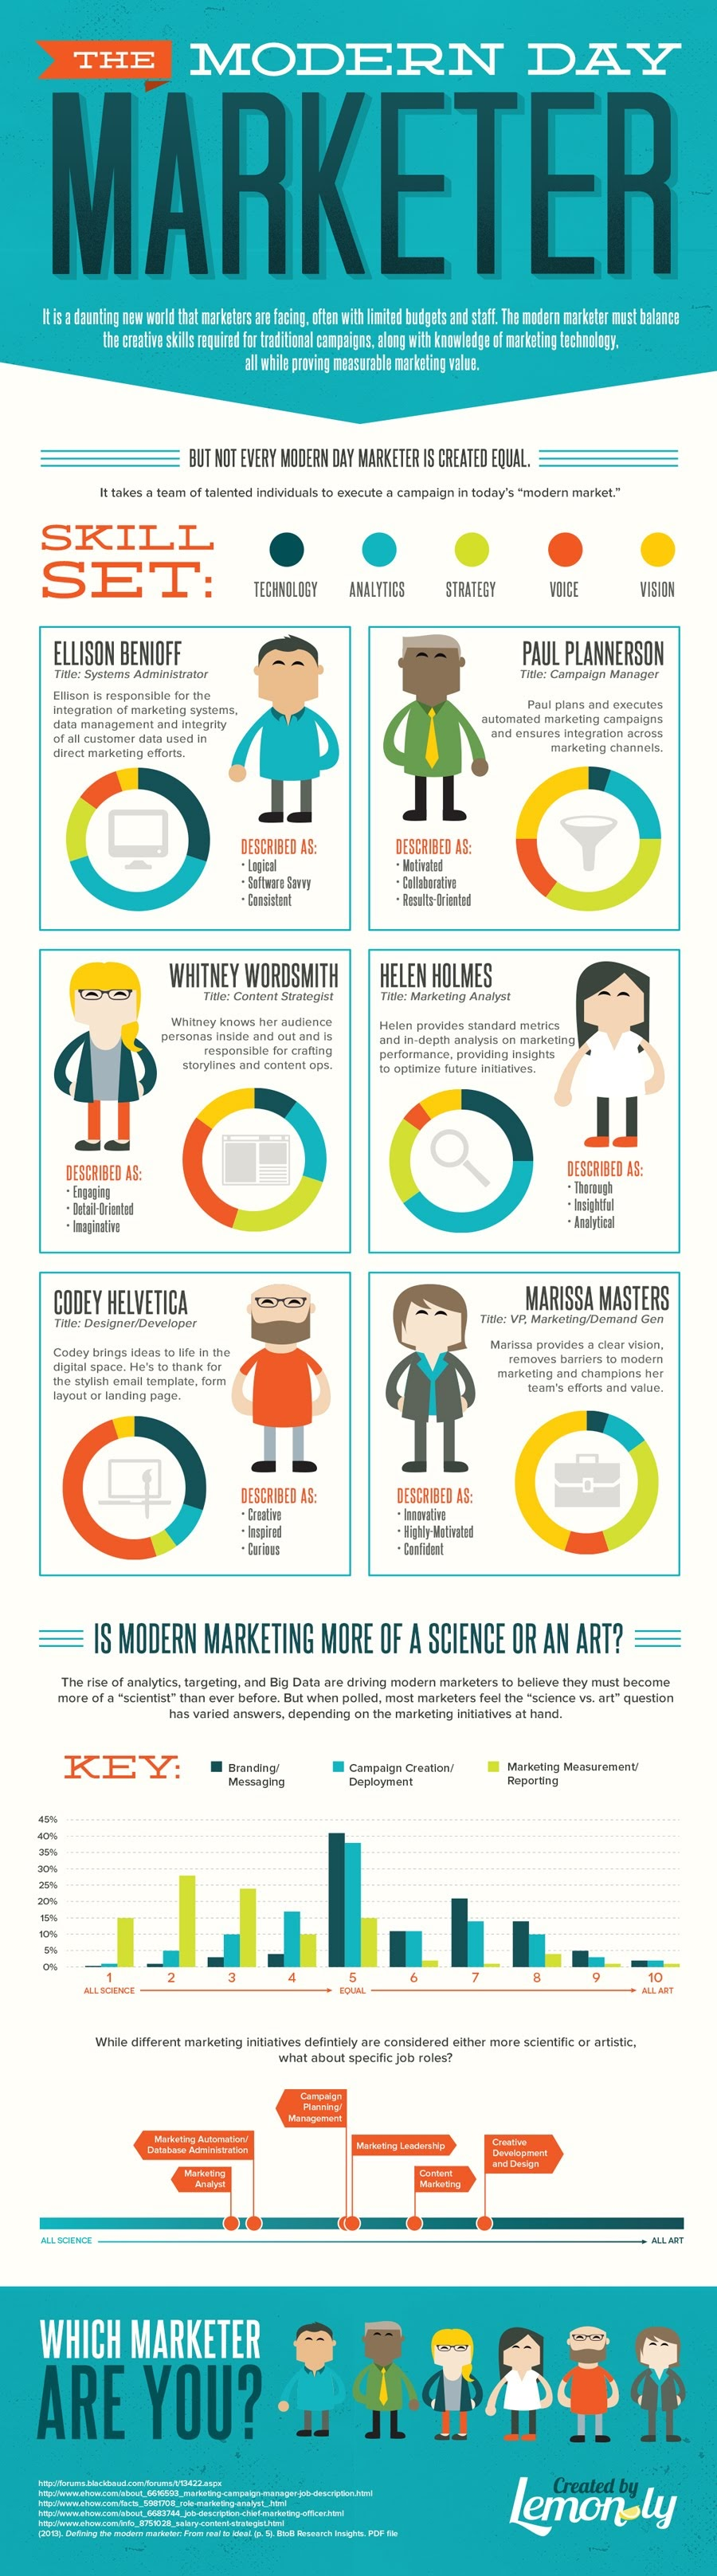 The Modern Day Marketer: The Perfect Marketing Team #infographic